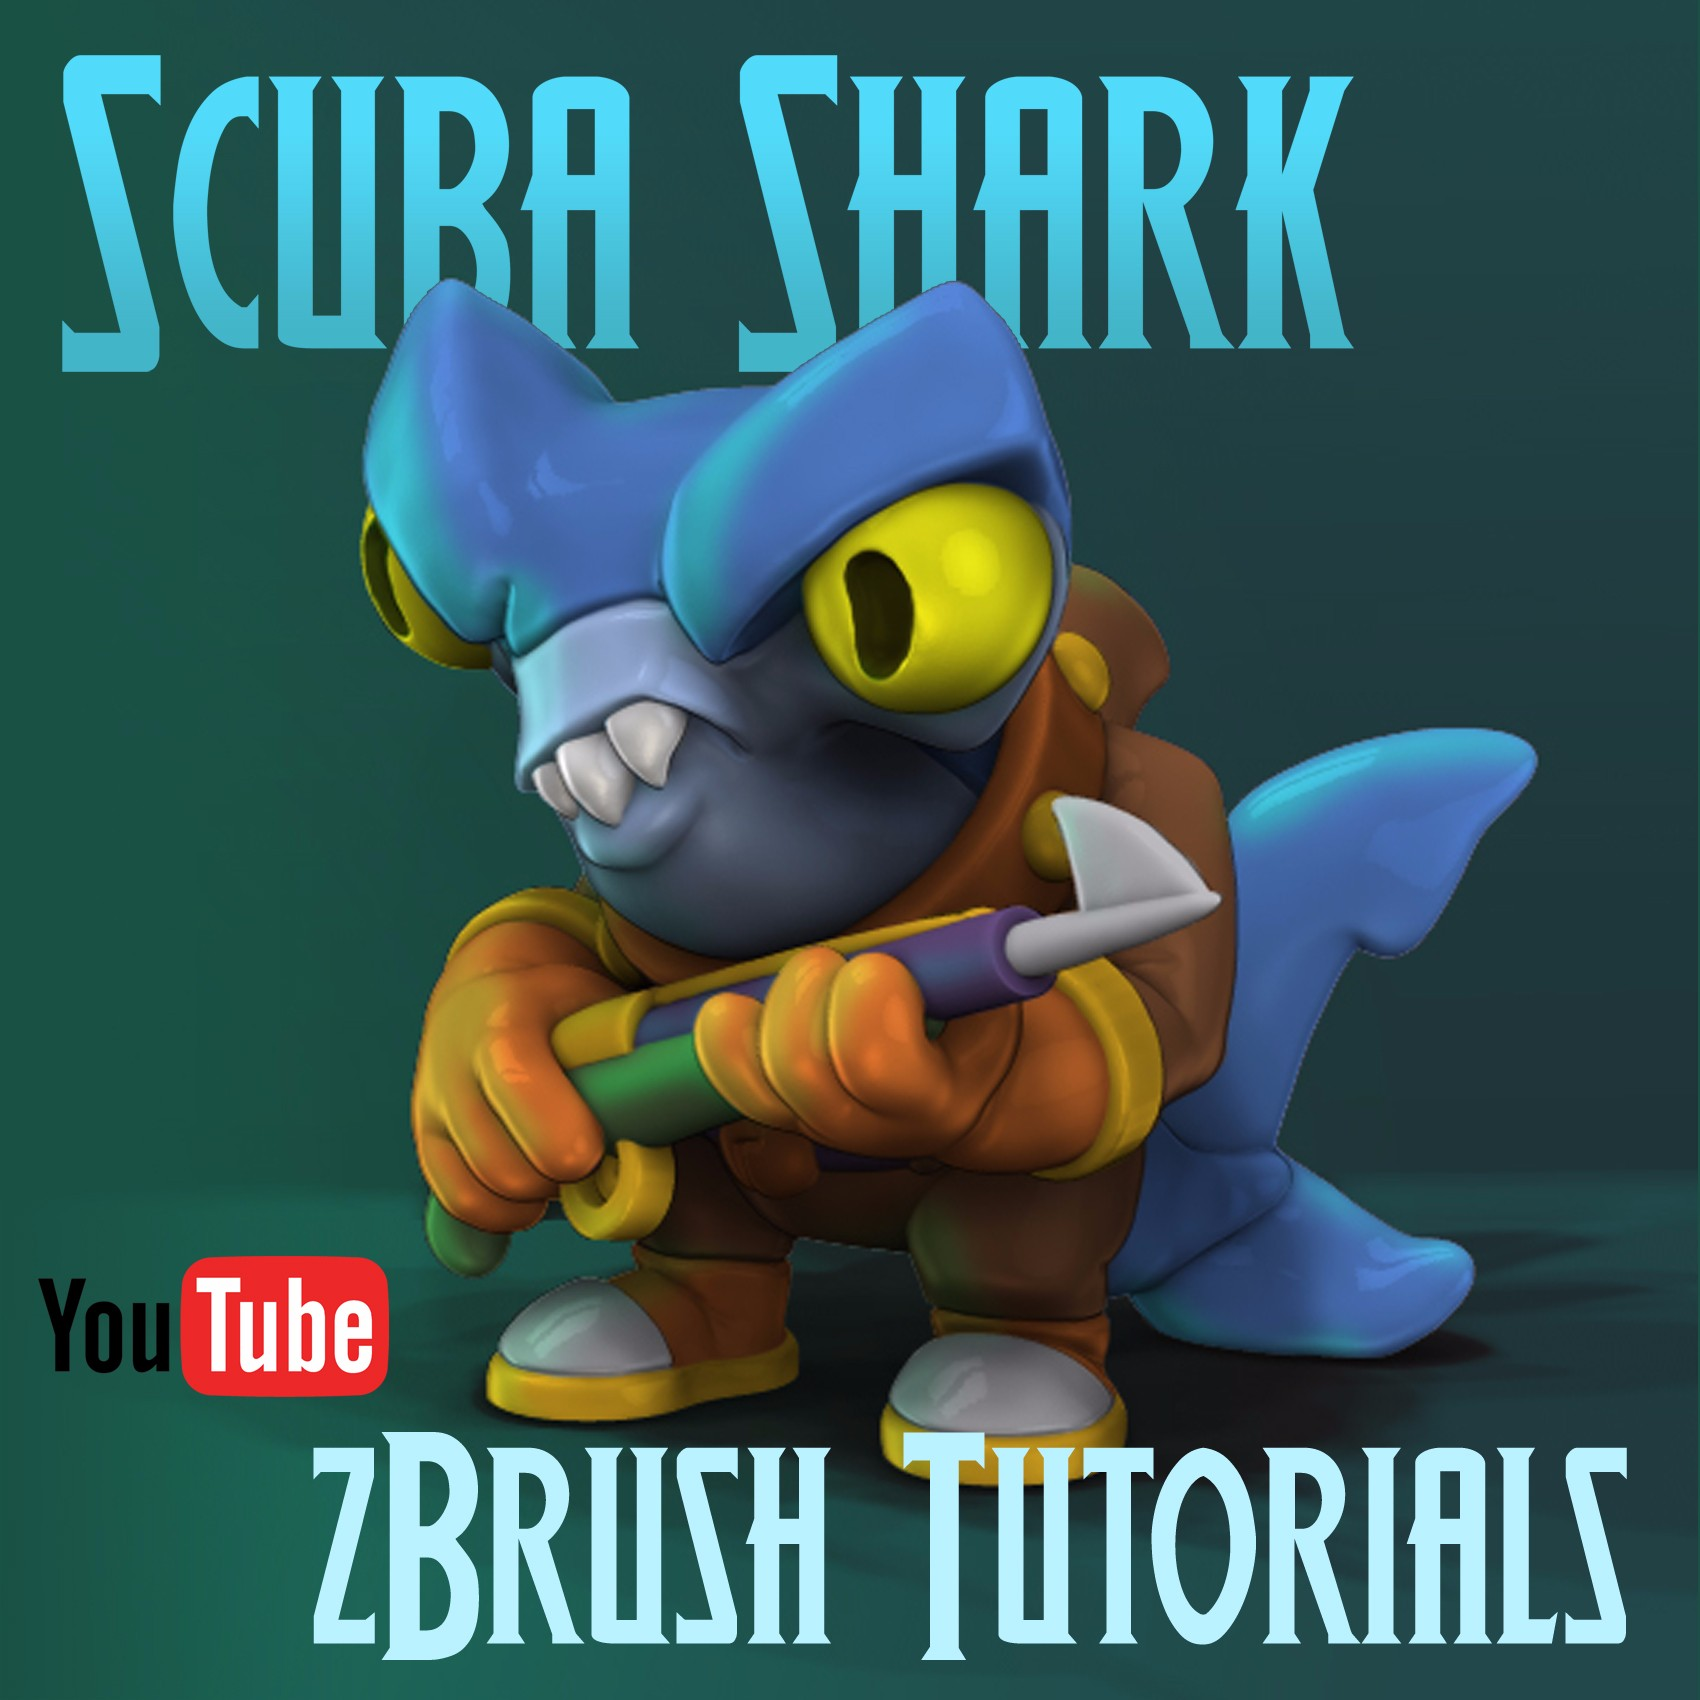 How To Use zBrush for 3D Modeling Toy Figurines YouTube Video Tutorials